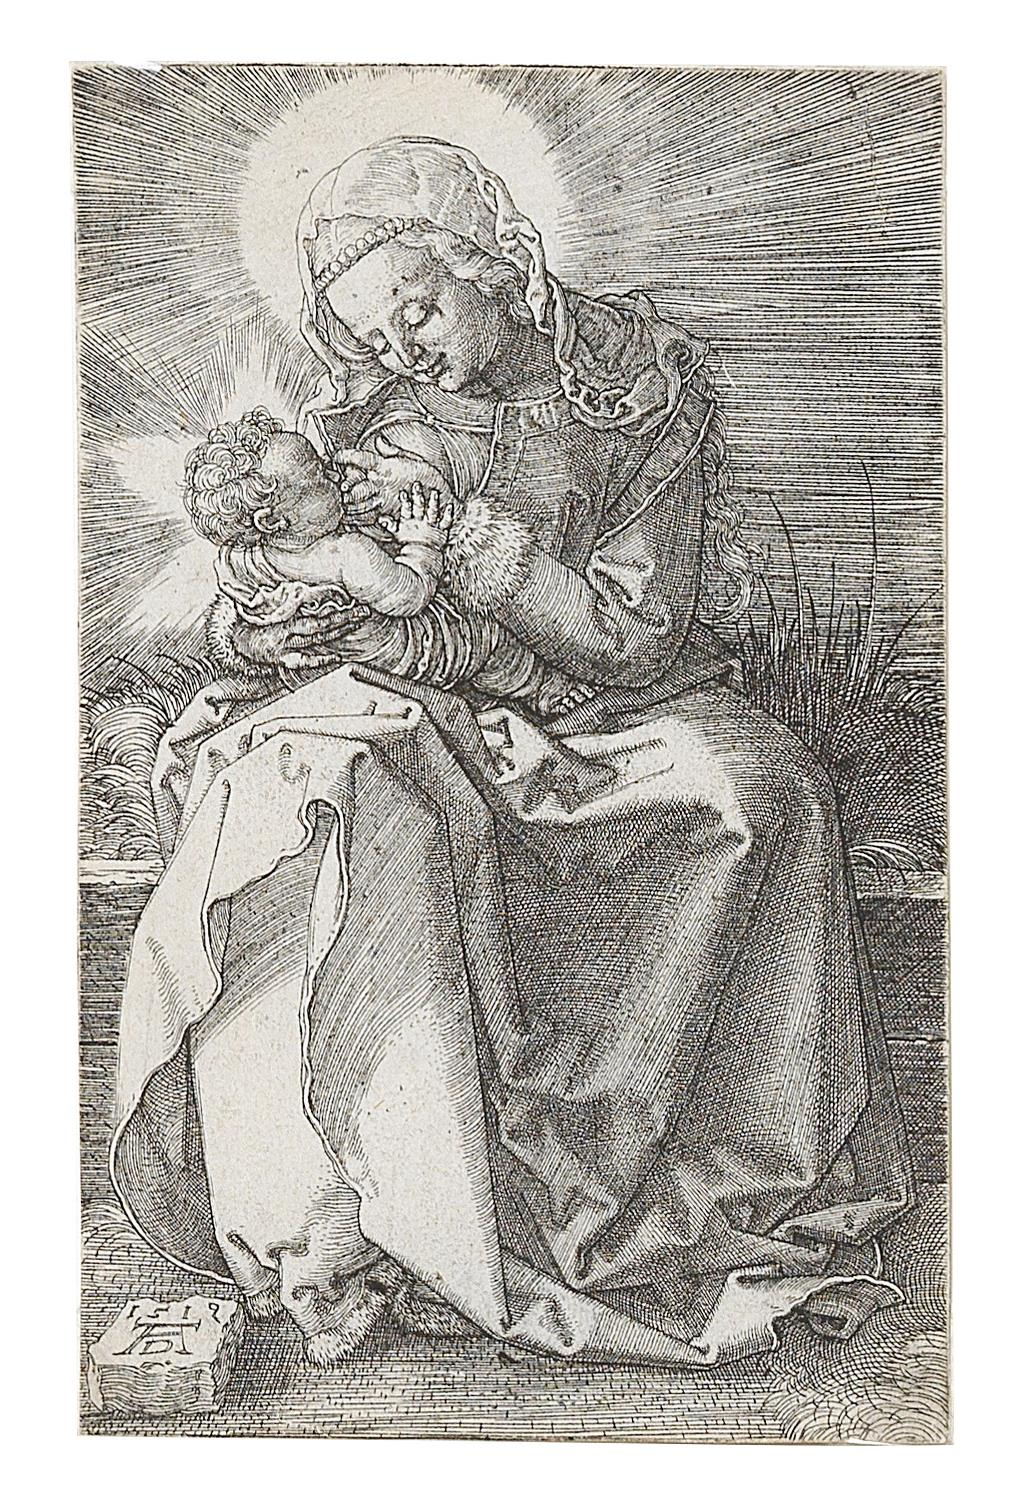 Albrecht Dürer, (Nuremberg 1471–1528) The Madonna nursing the child, engraving on laid paper, monogrammed and dated AD 1519 in the plate, 11,7 x 7,5 cm, Starting bid €6,000